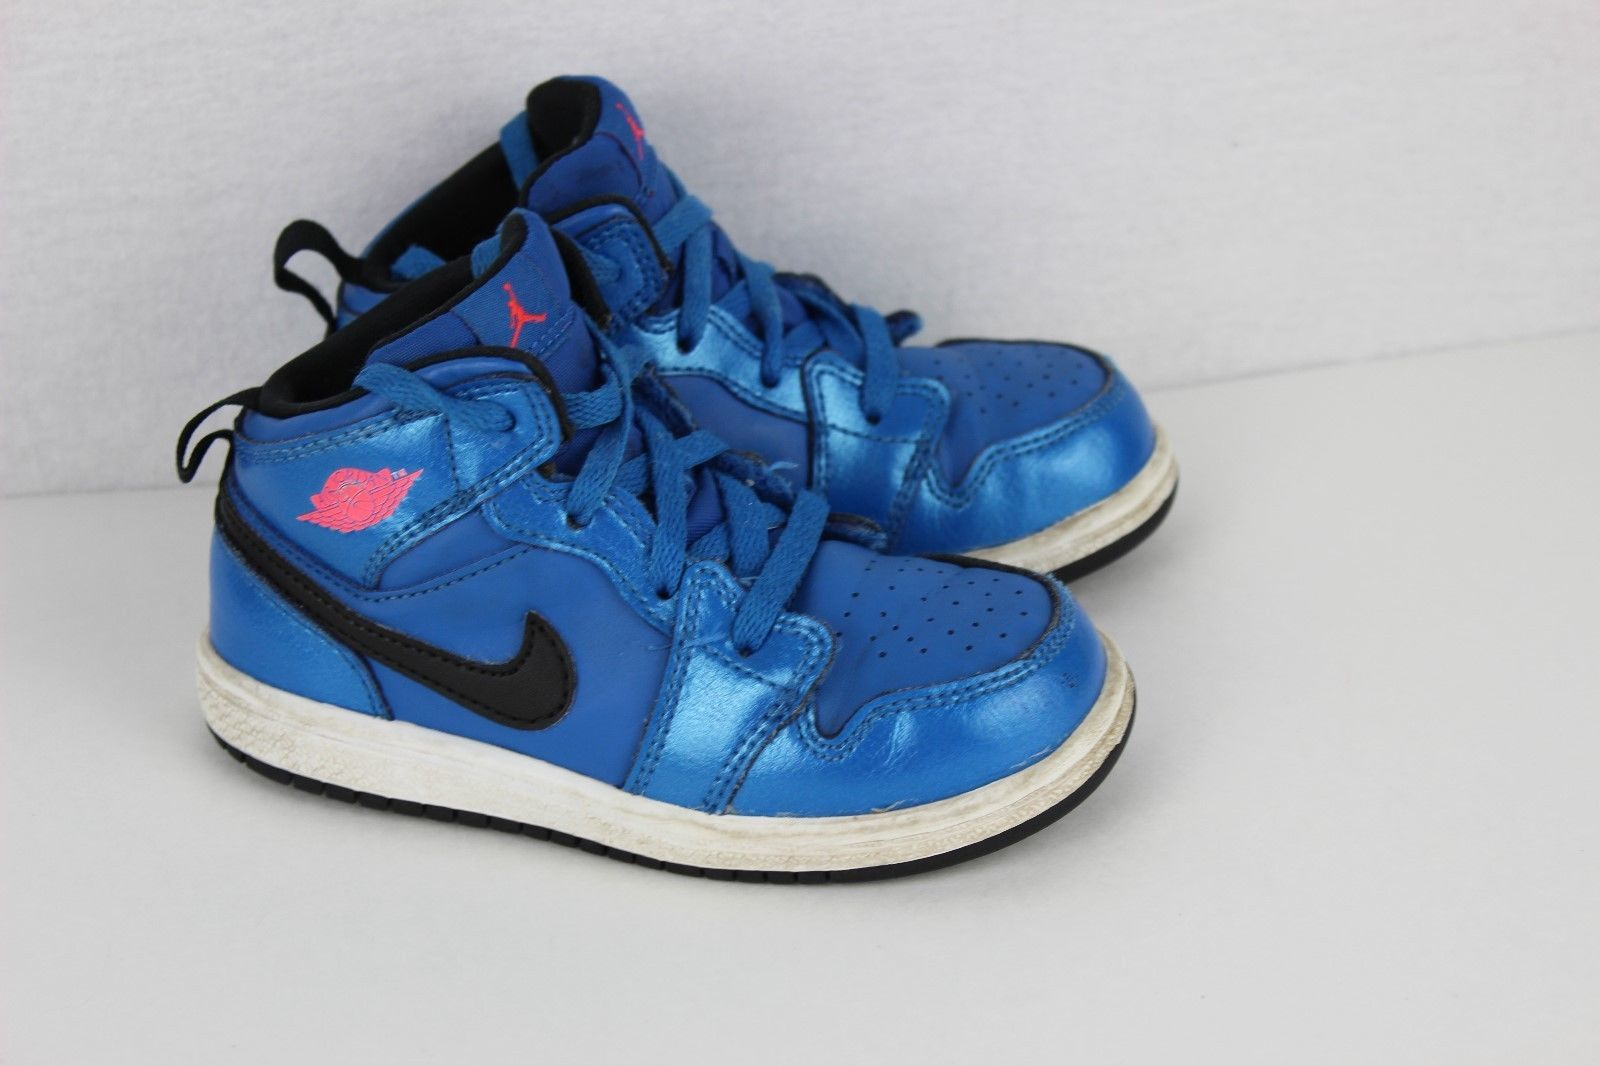 new arrival 26eaf 2f96a Nike Air Jordan Nike toddler kids leather basketball blue lace size 8C